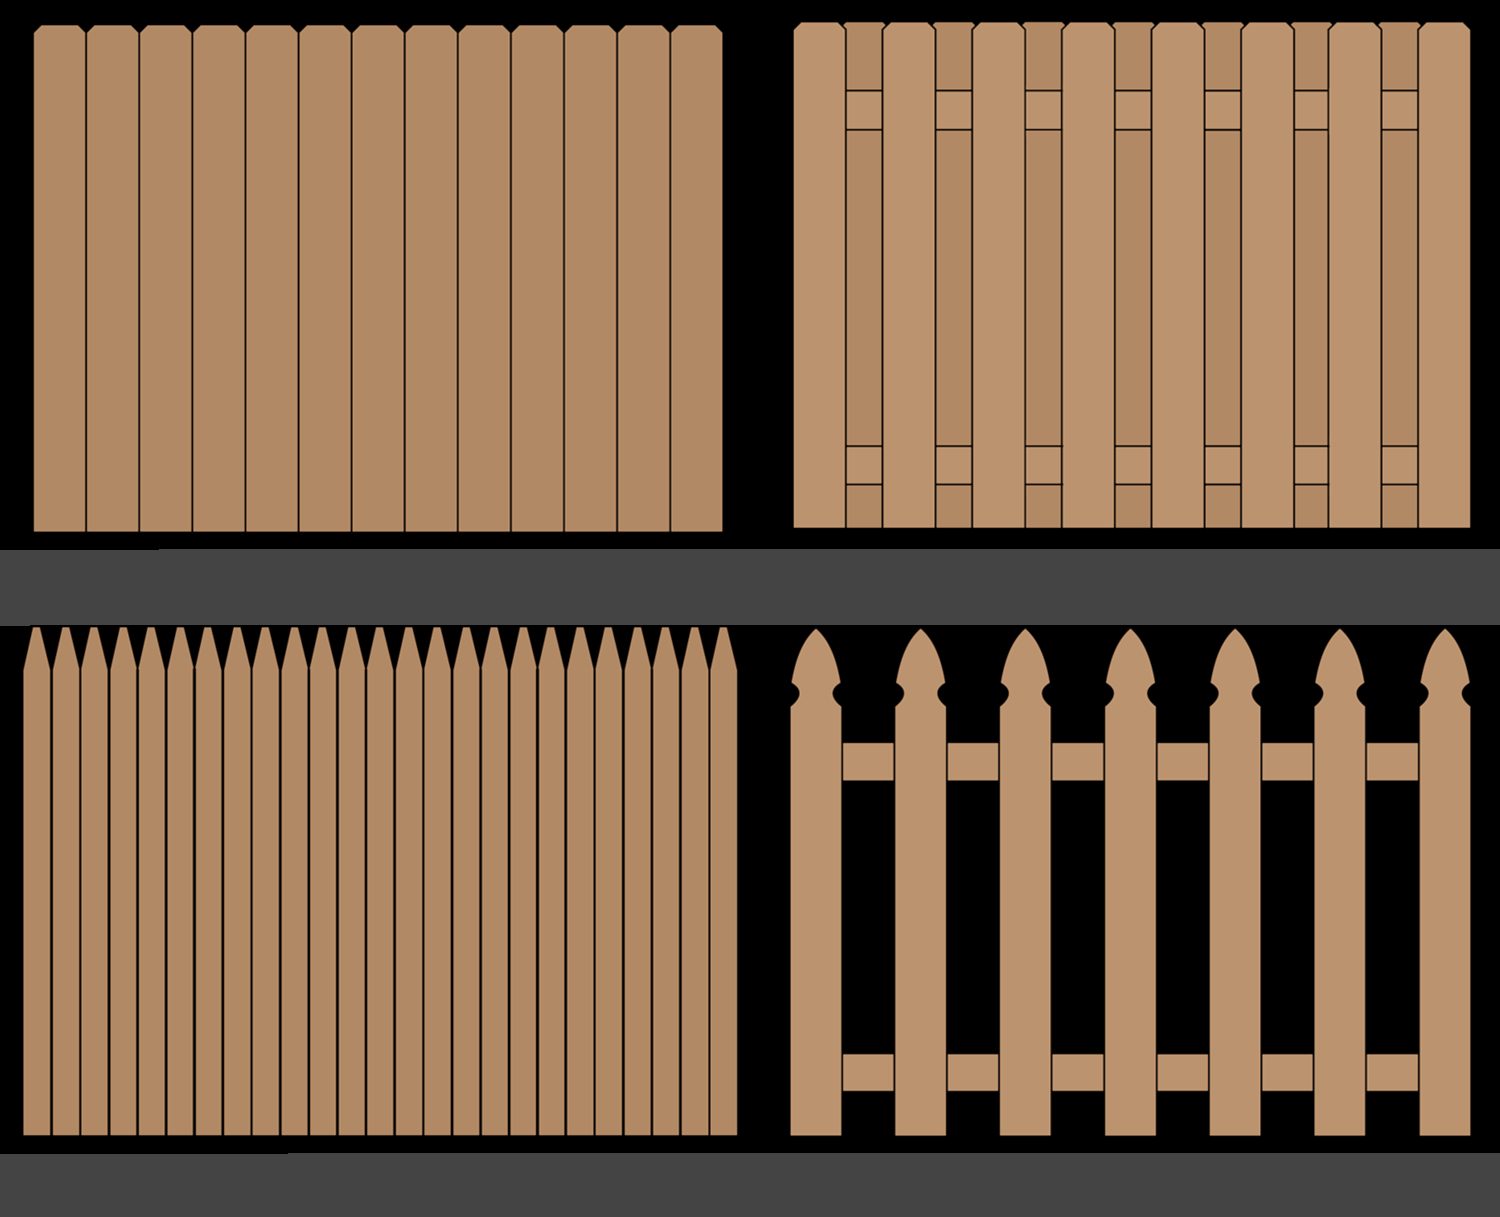 Fence Calculator Estimate Wood Fencing Materials And Post Centers within 16 Smart Ideas How to Make Backyard Fence Cost Calculator